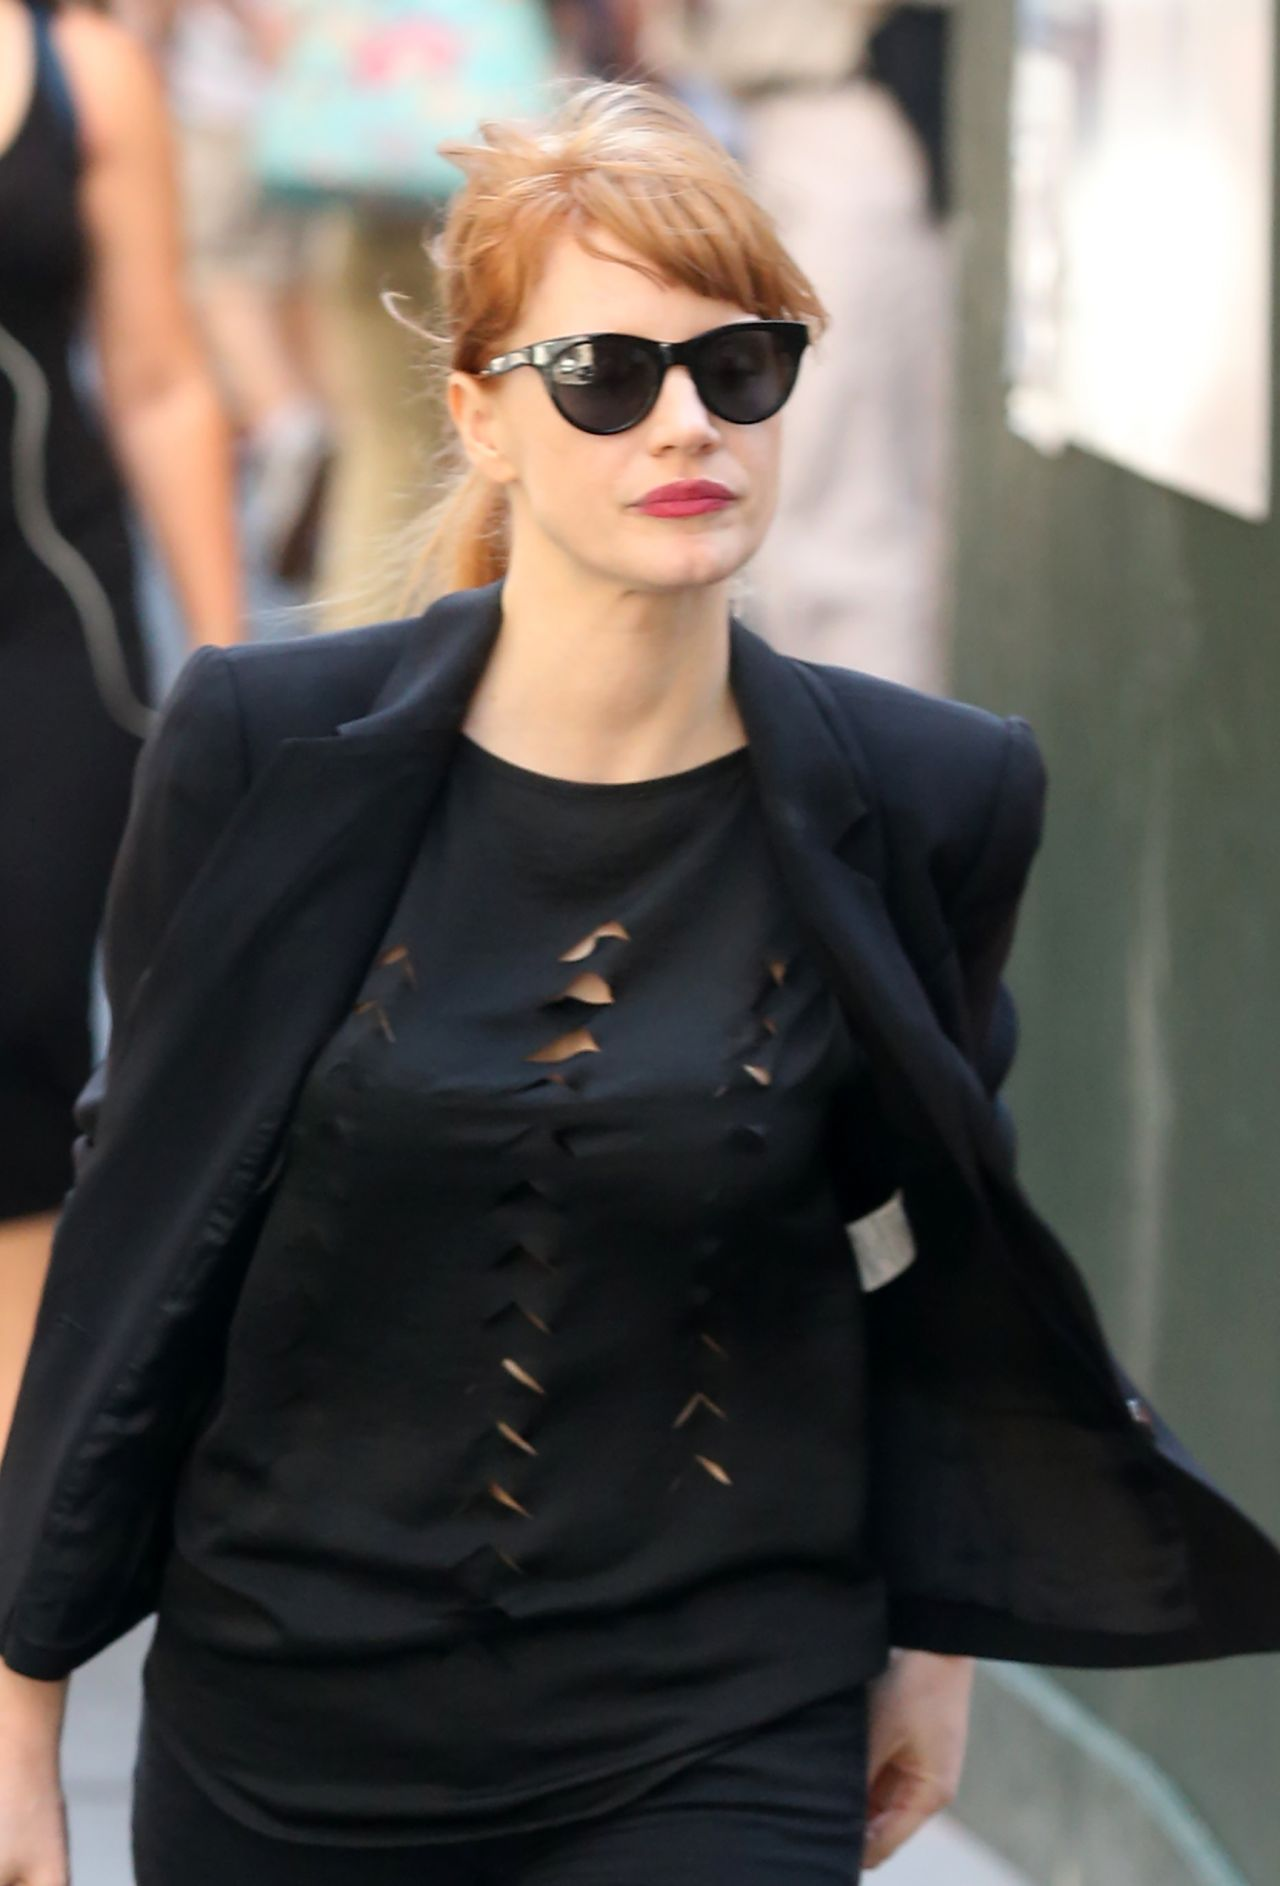 Jessica Chastain Out New York City - August 2014